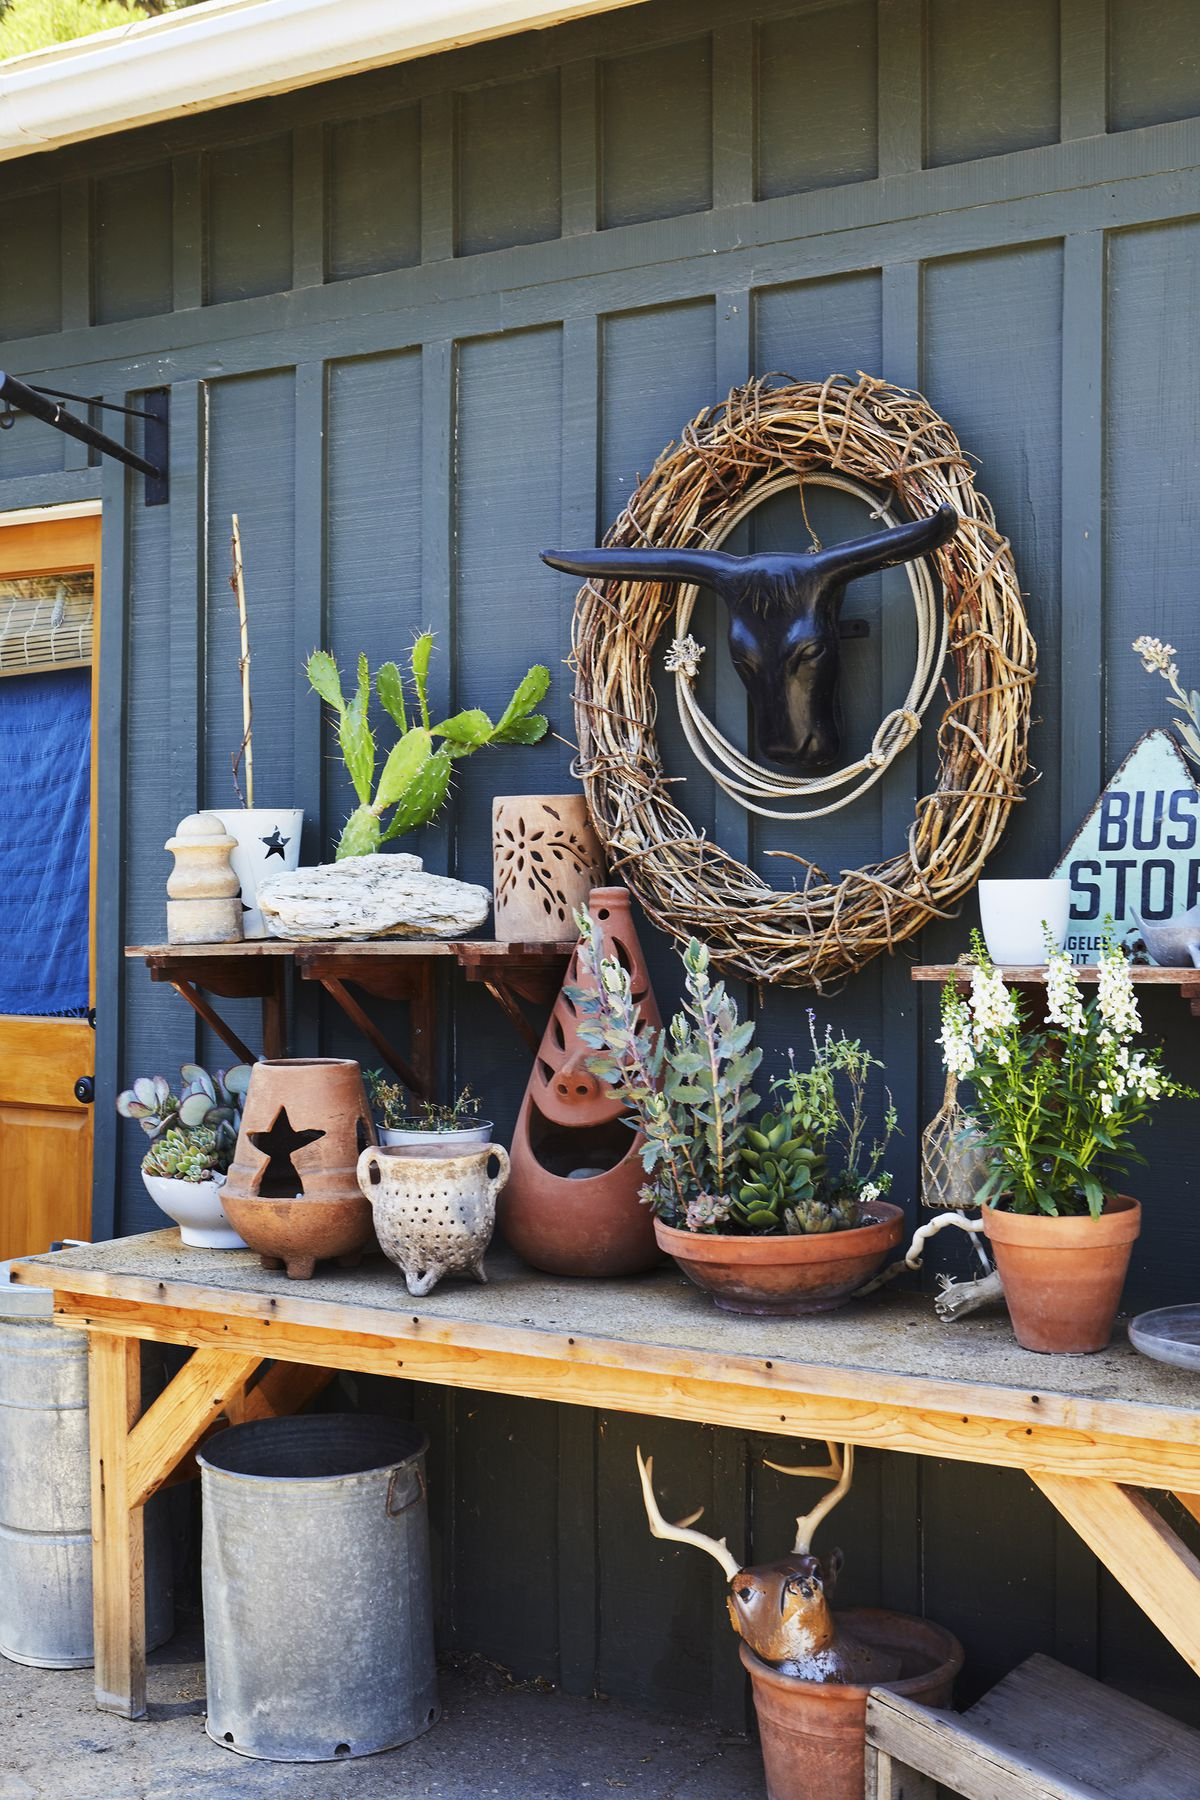 A potting-type area filled with plants and pots sits outside a blue guest cottage.